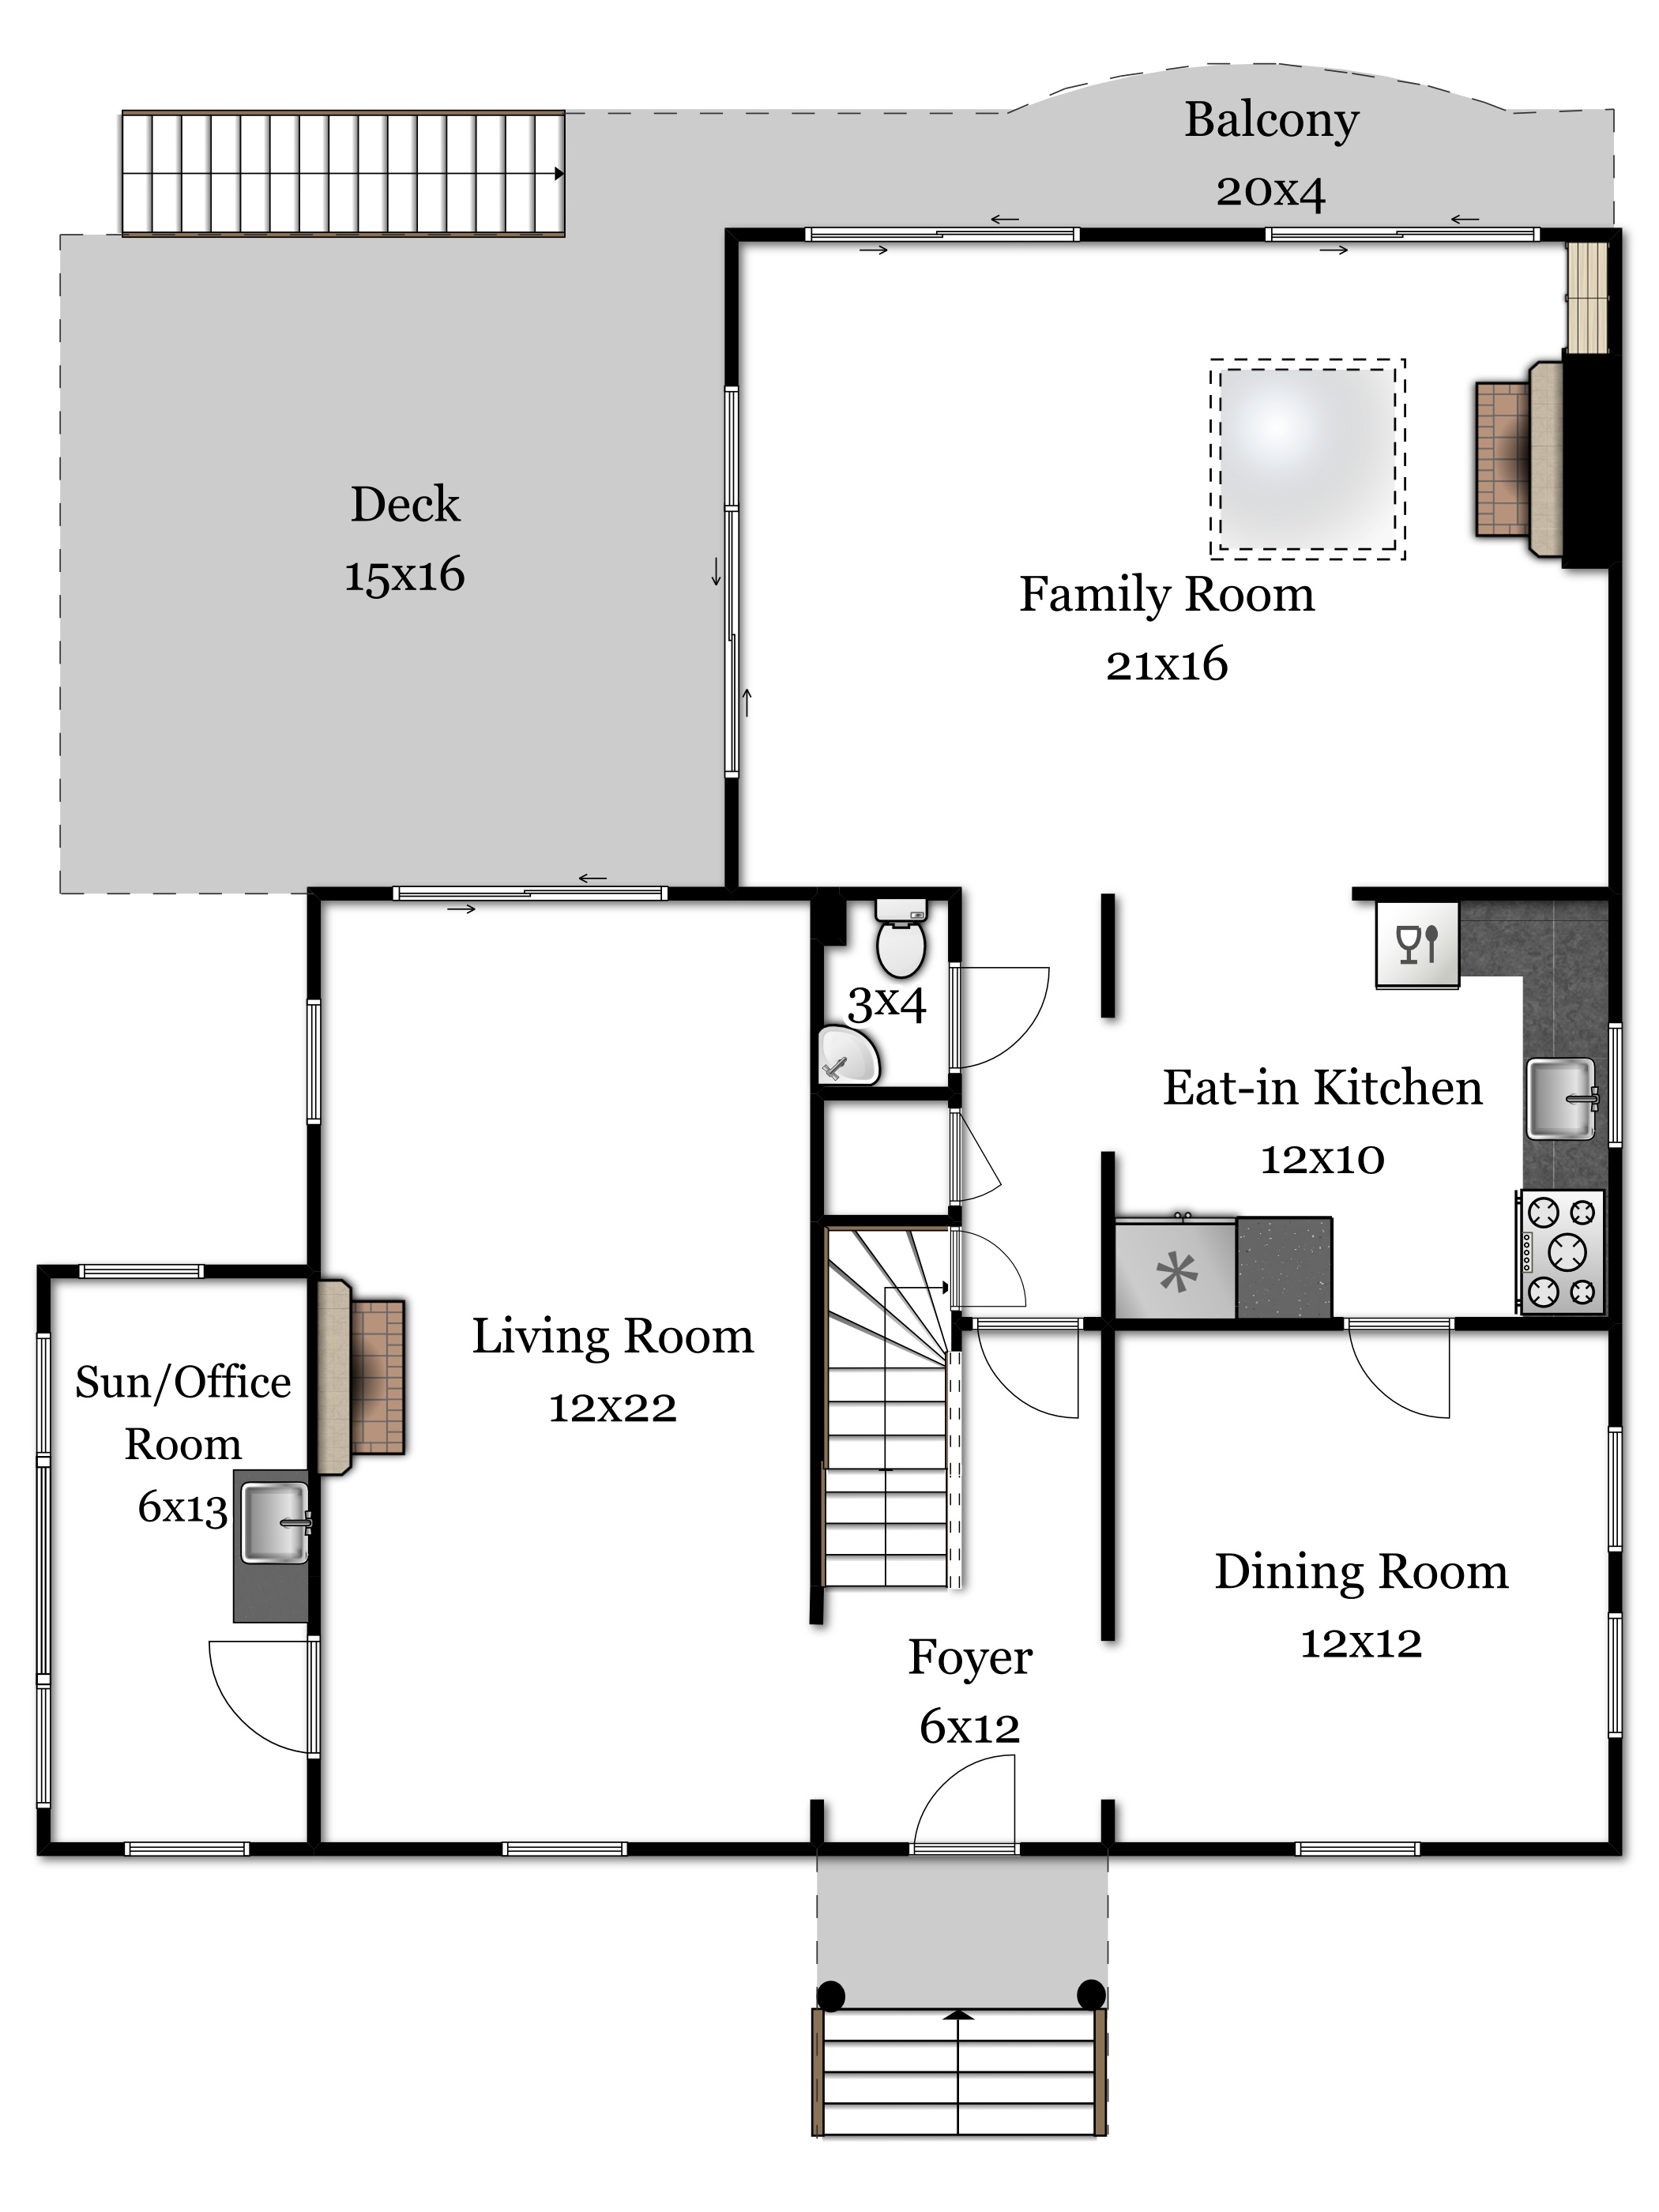 98 Oakdale Road | Vulee Tours on blueprints for houses with open floor plans, mansion plans, i house architecture, i house home, home design floor plans, home builders floor plans, roof plans, split level home floor plans,